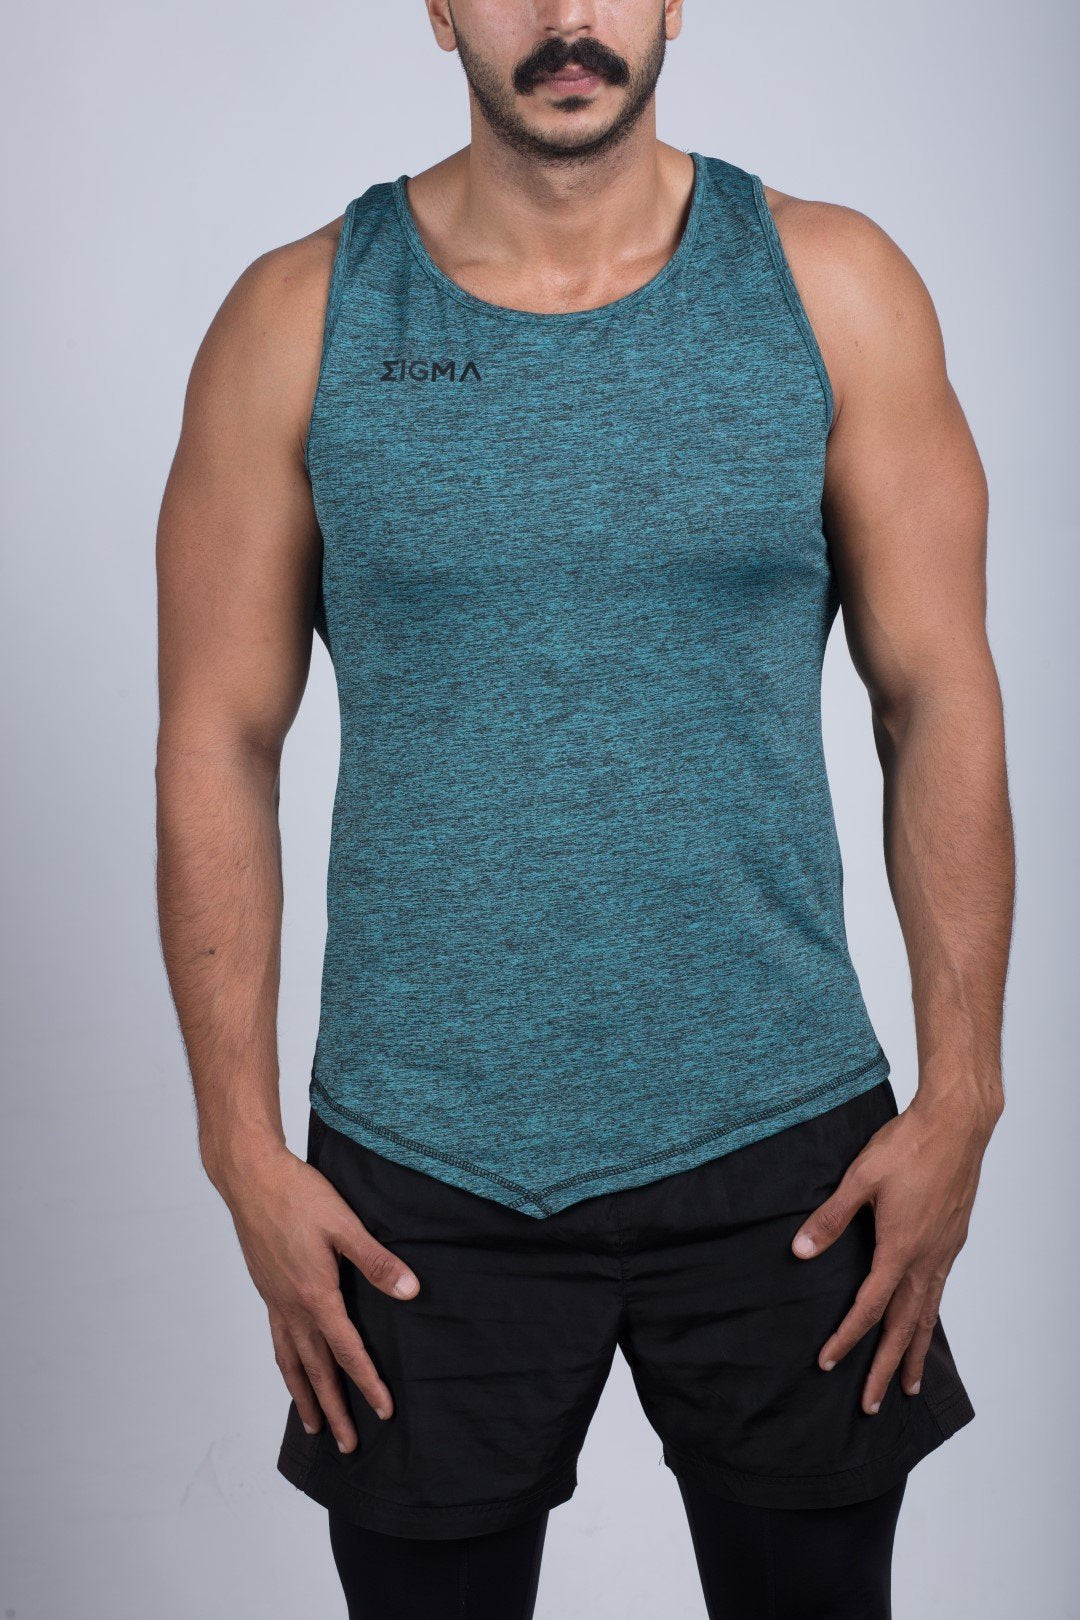 Muscle Shirt (Metallic Blue) - Sigma Fit